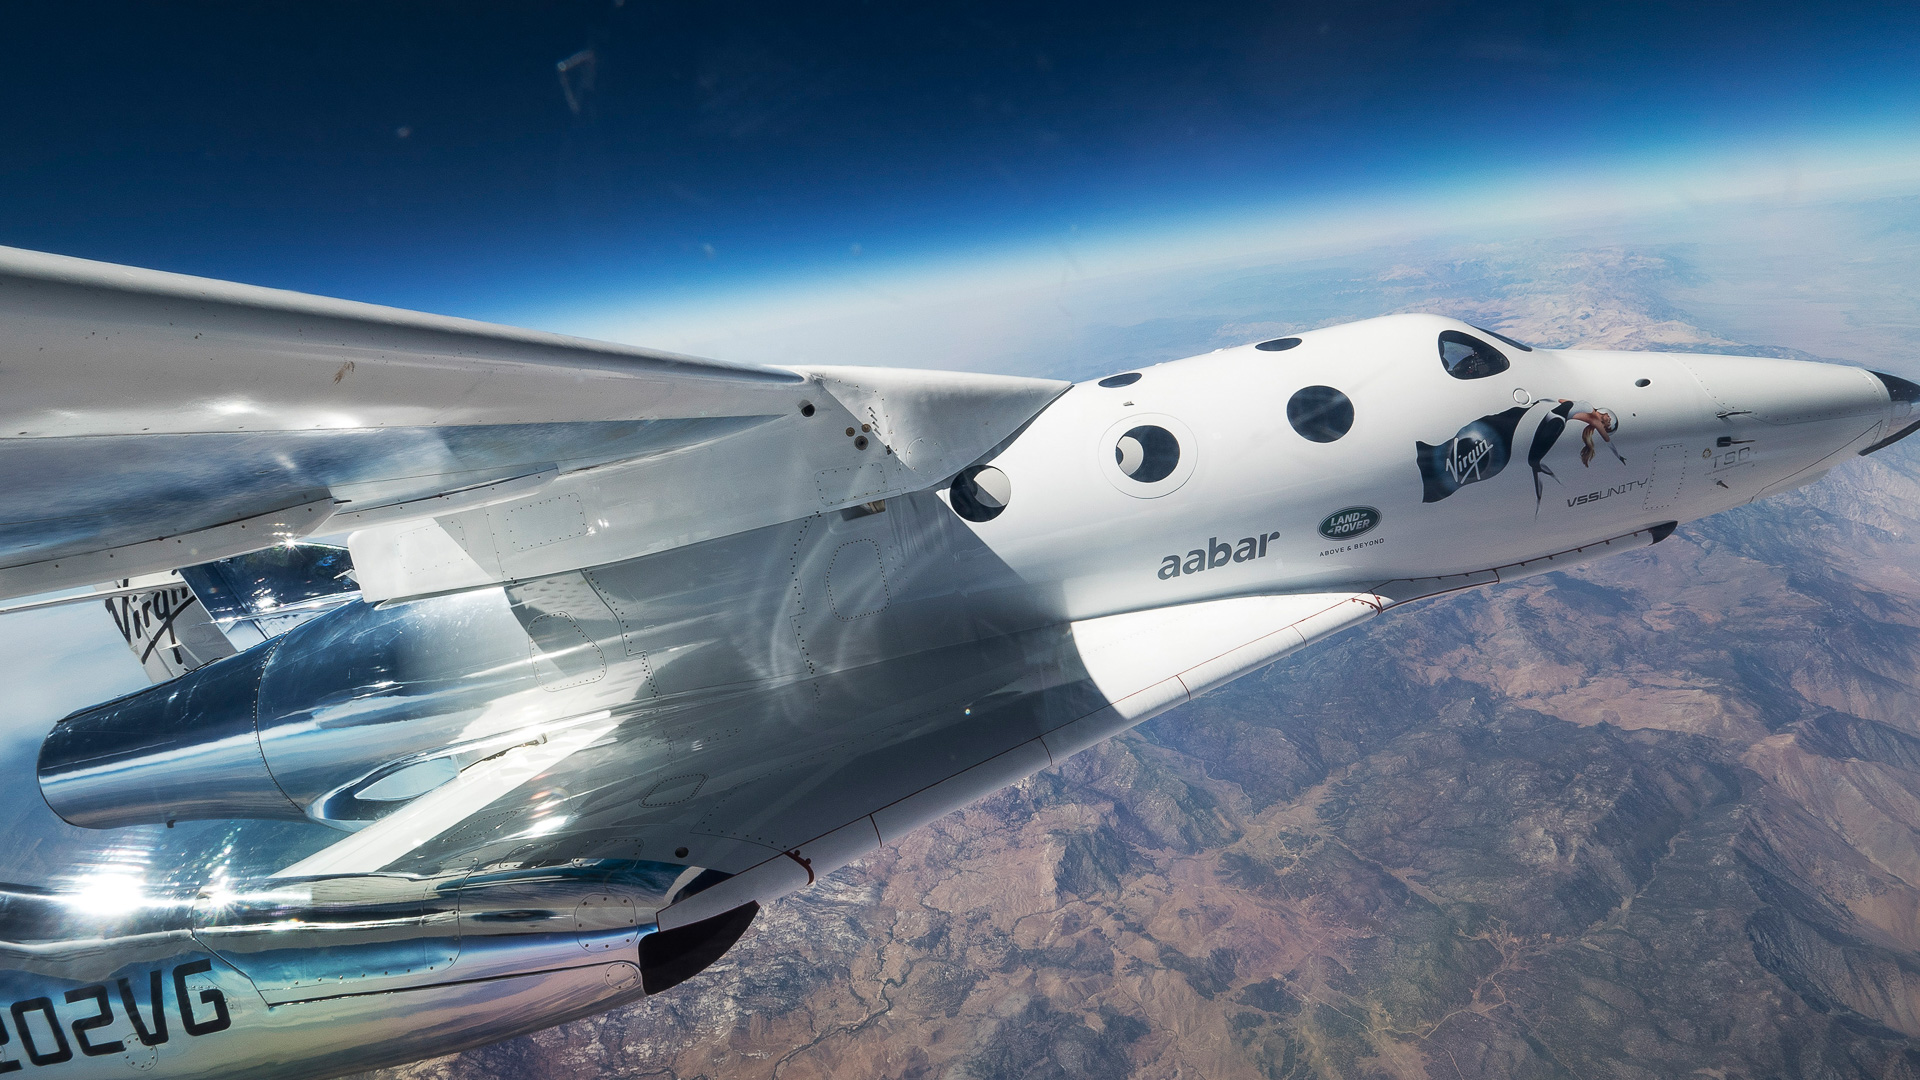 VMS Eve (Virgin Mother Ship) carries VSS Unity (Virgin Spaceship) for its first flight